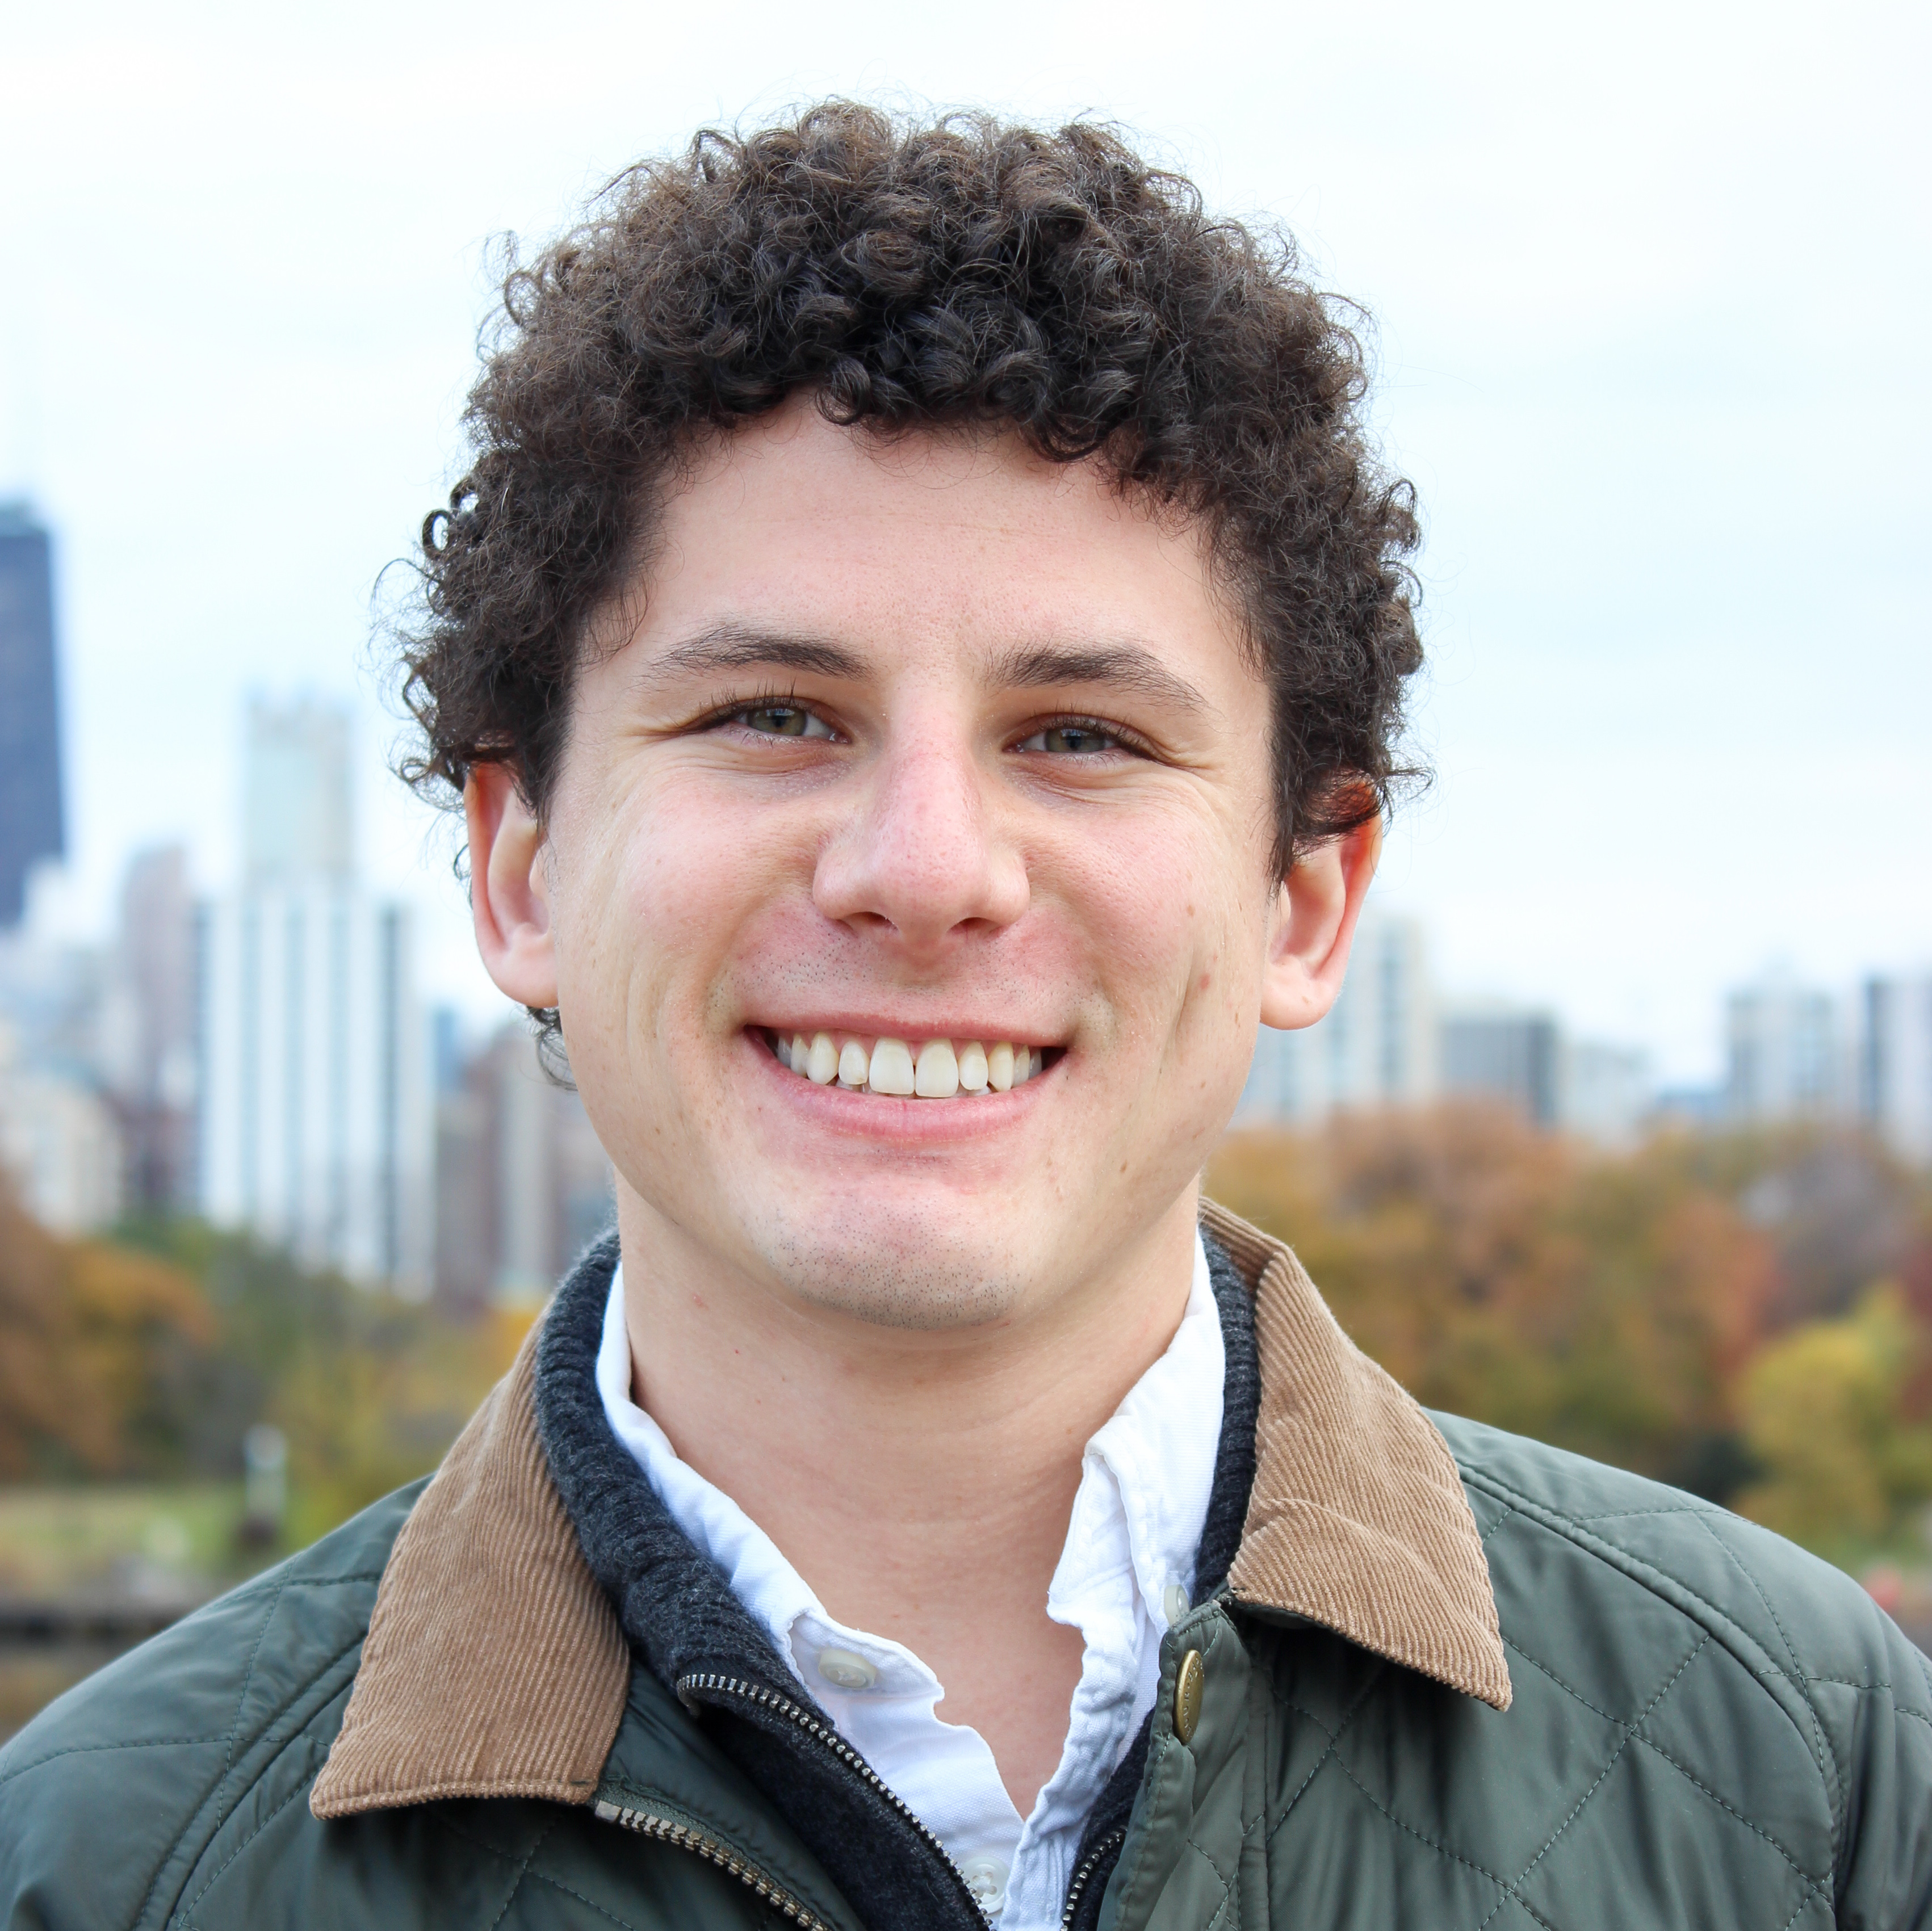 CodeHS Co-Founder: Zach Galant